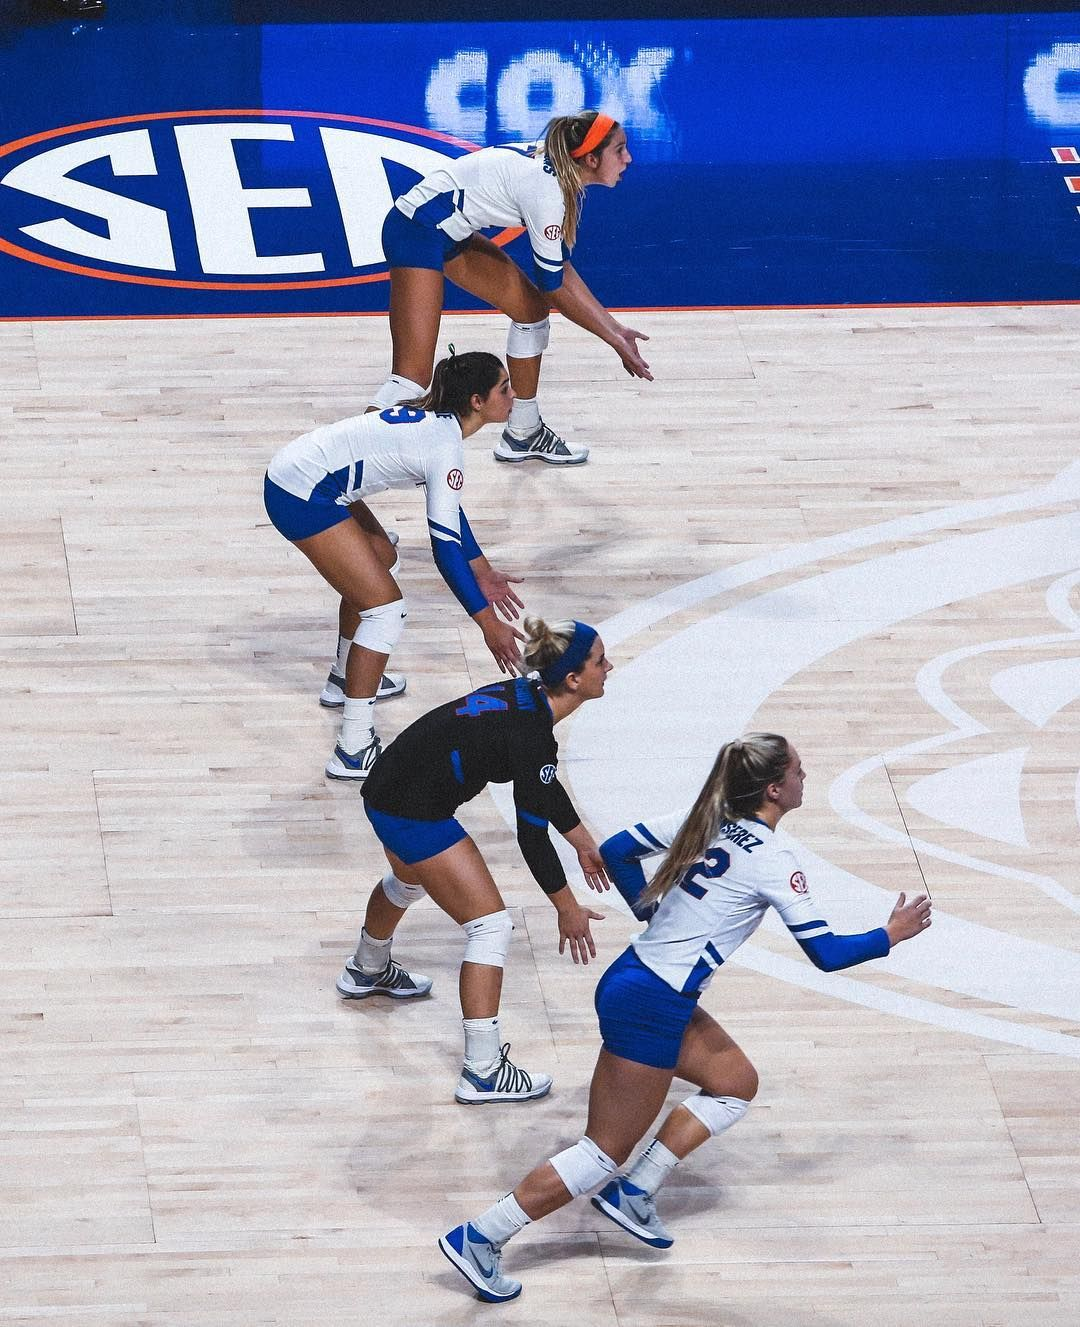 Defense Gogators Volleyball Outfits Women Volleyball Volleyball Photography